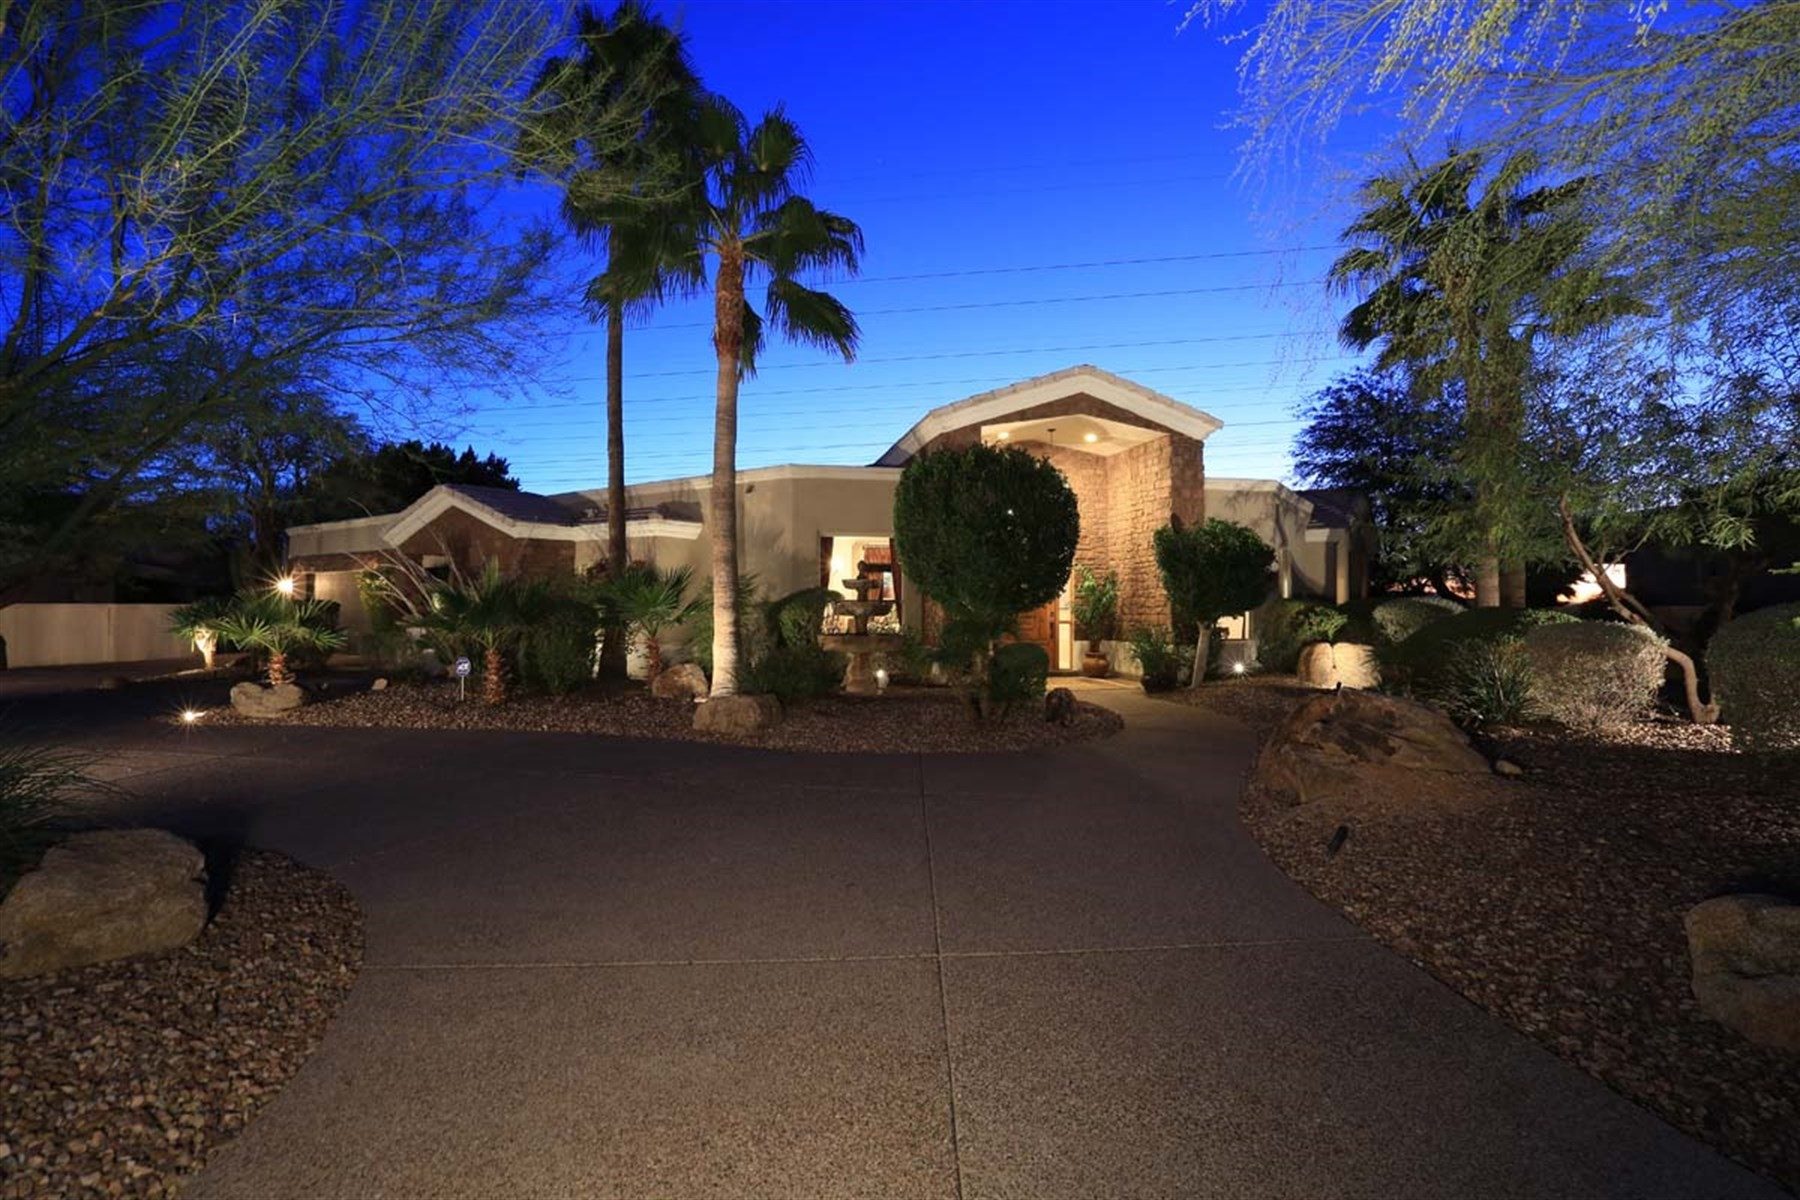 Single Family Home for Sale at Meticulously Maintained home in Scottsdale 10290 N 117TH PL Scottsdale, Arizona, 85259 United States